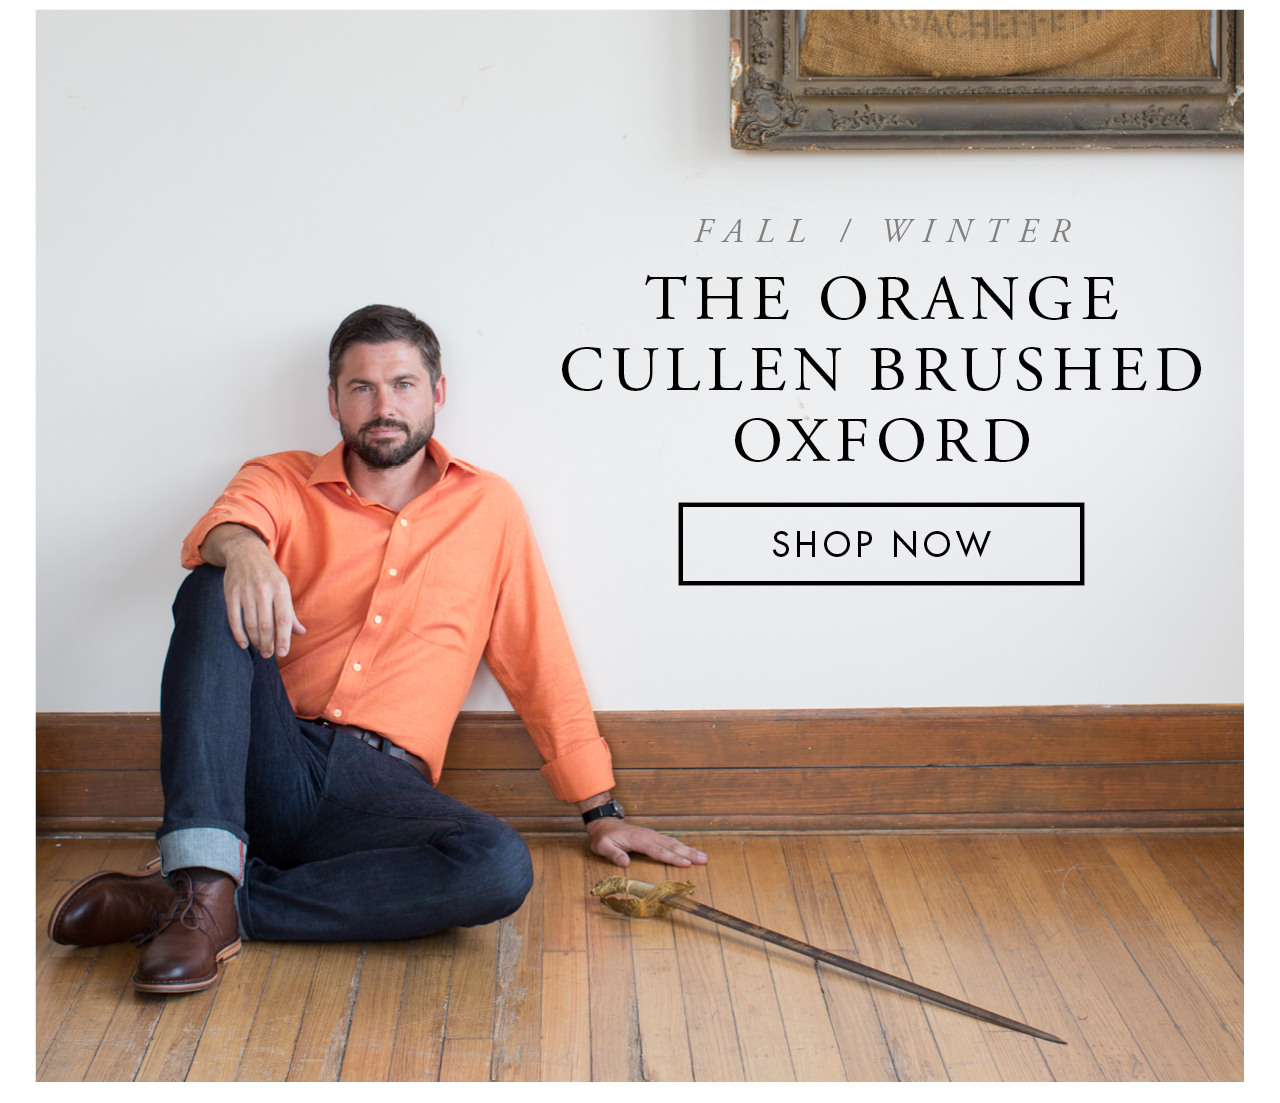 The Orange Cullen Brushed Oxford